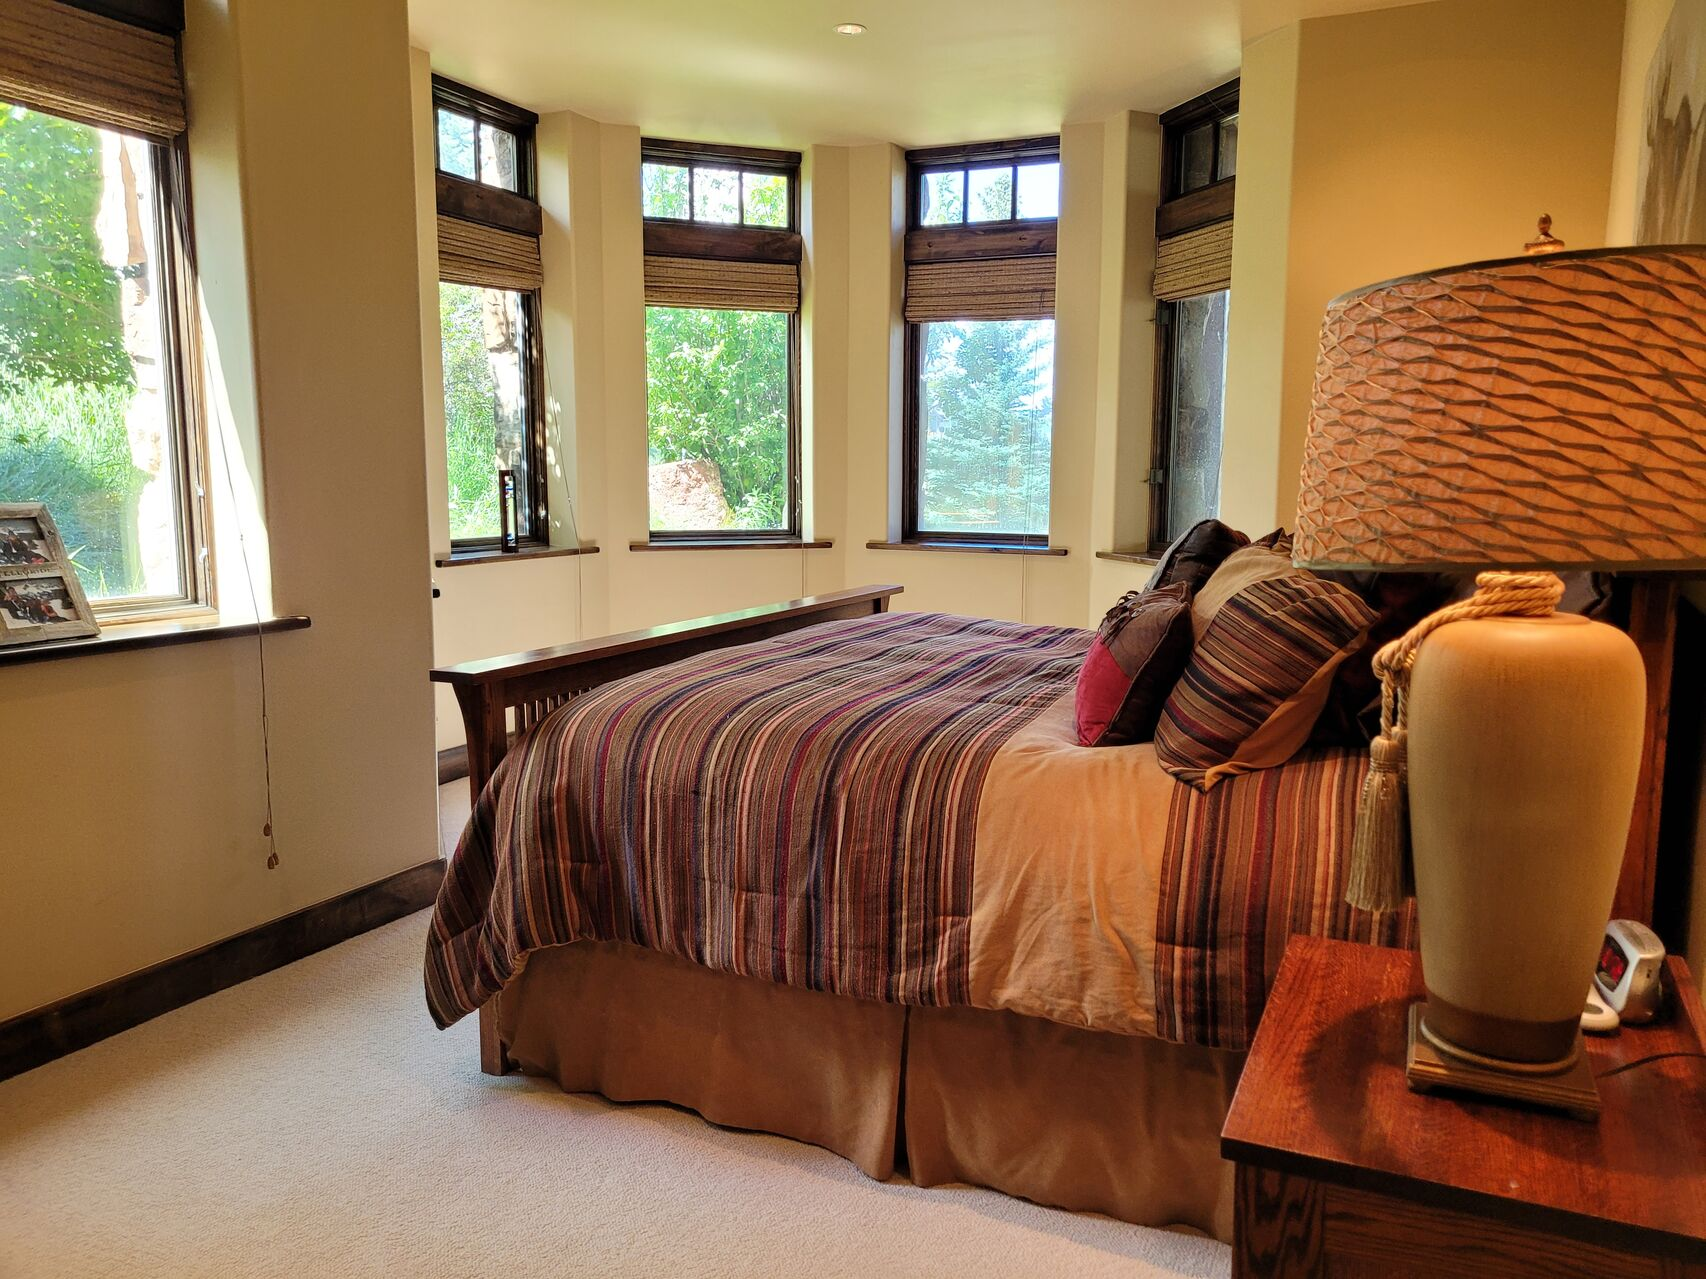 Bedroom with large bed with striped cover